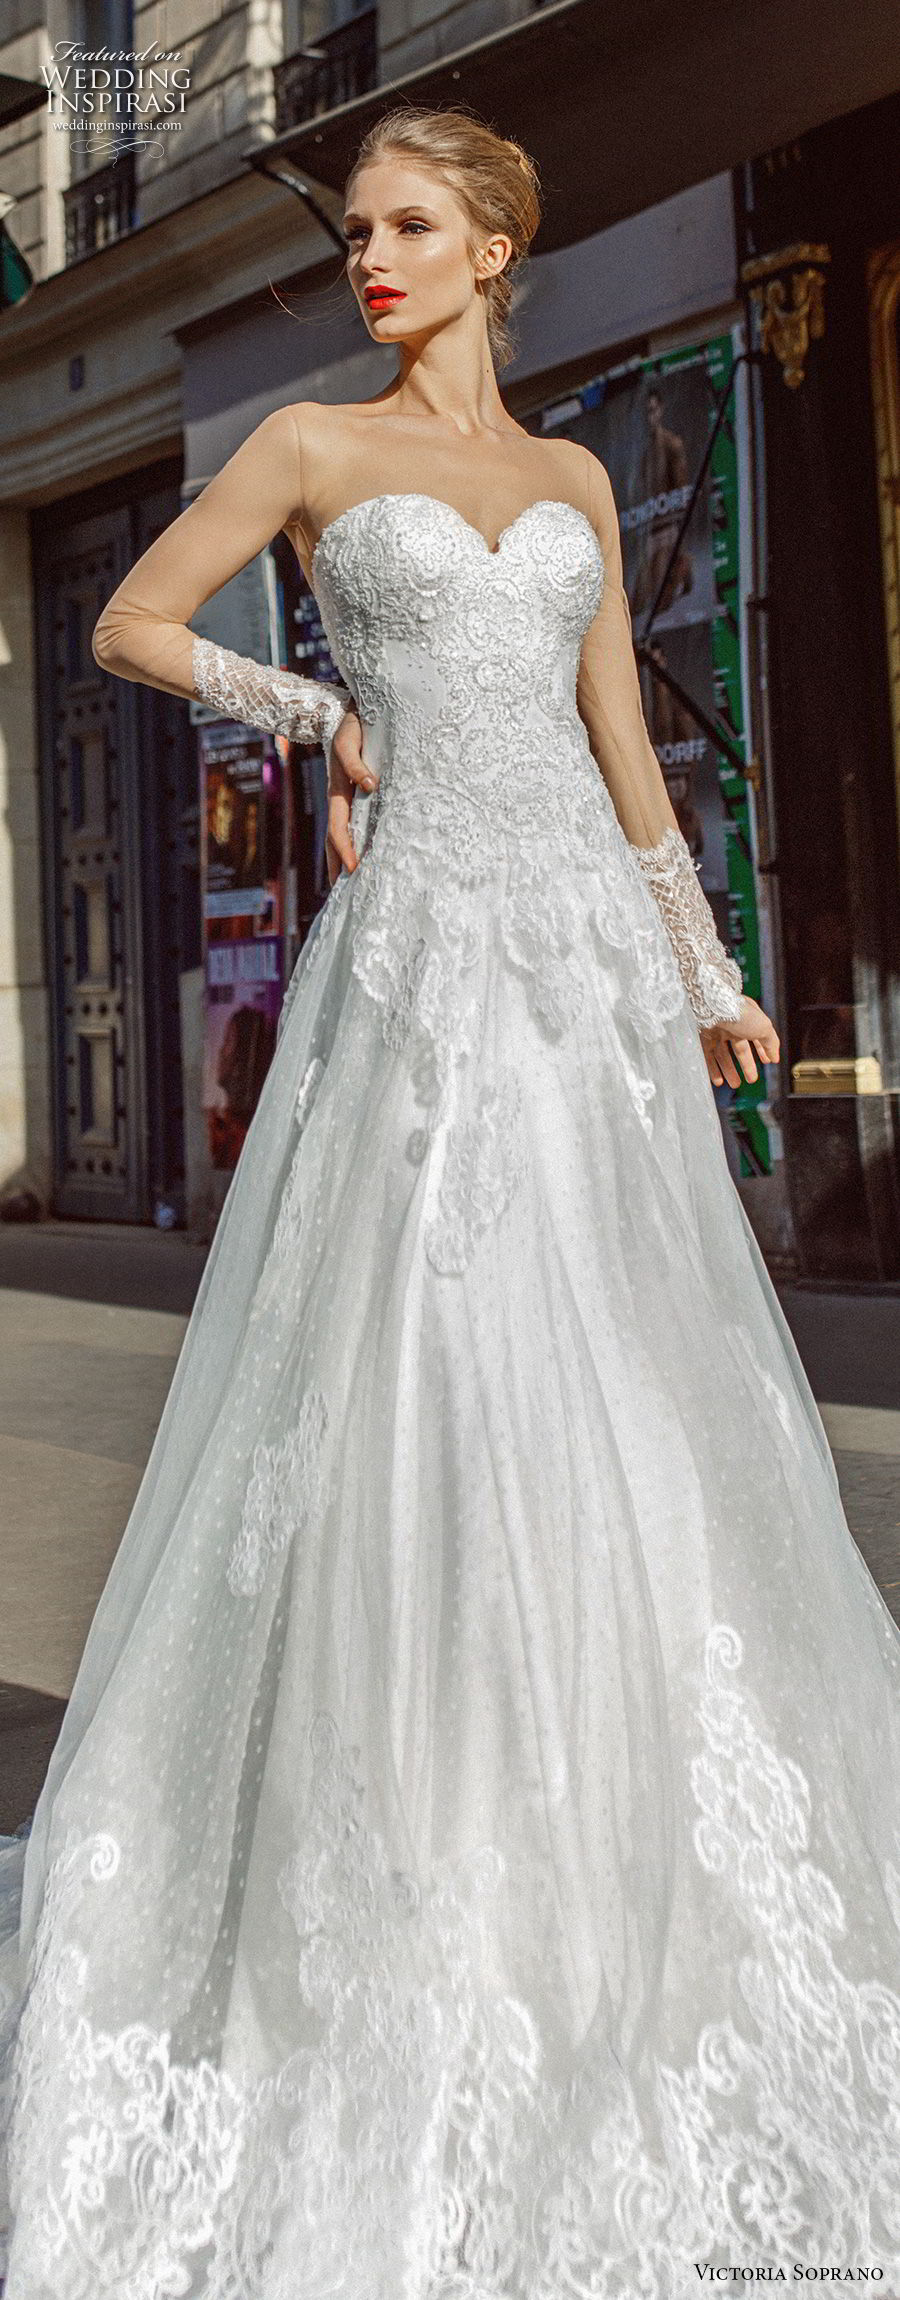 victoria soprano 2019 bridal long sleeves illusion bateau sweetheart neckline heavily embellished bodice princess a  line wedding dress lace back chapel train (3) lv